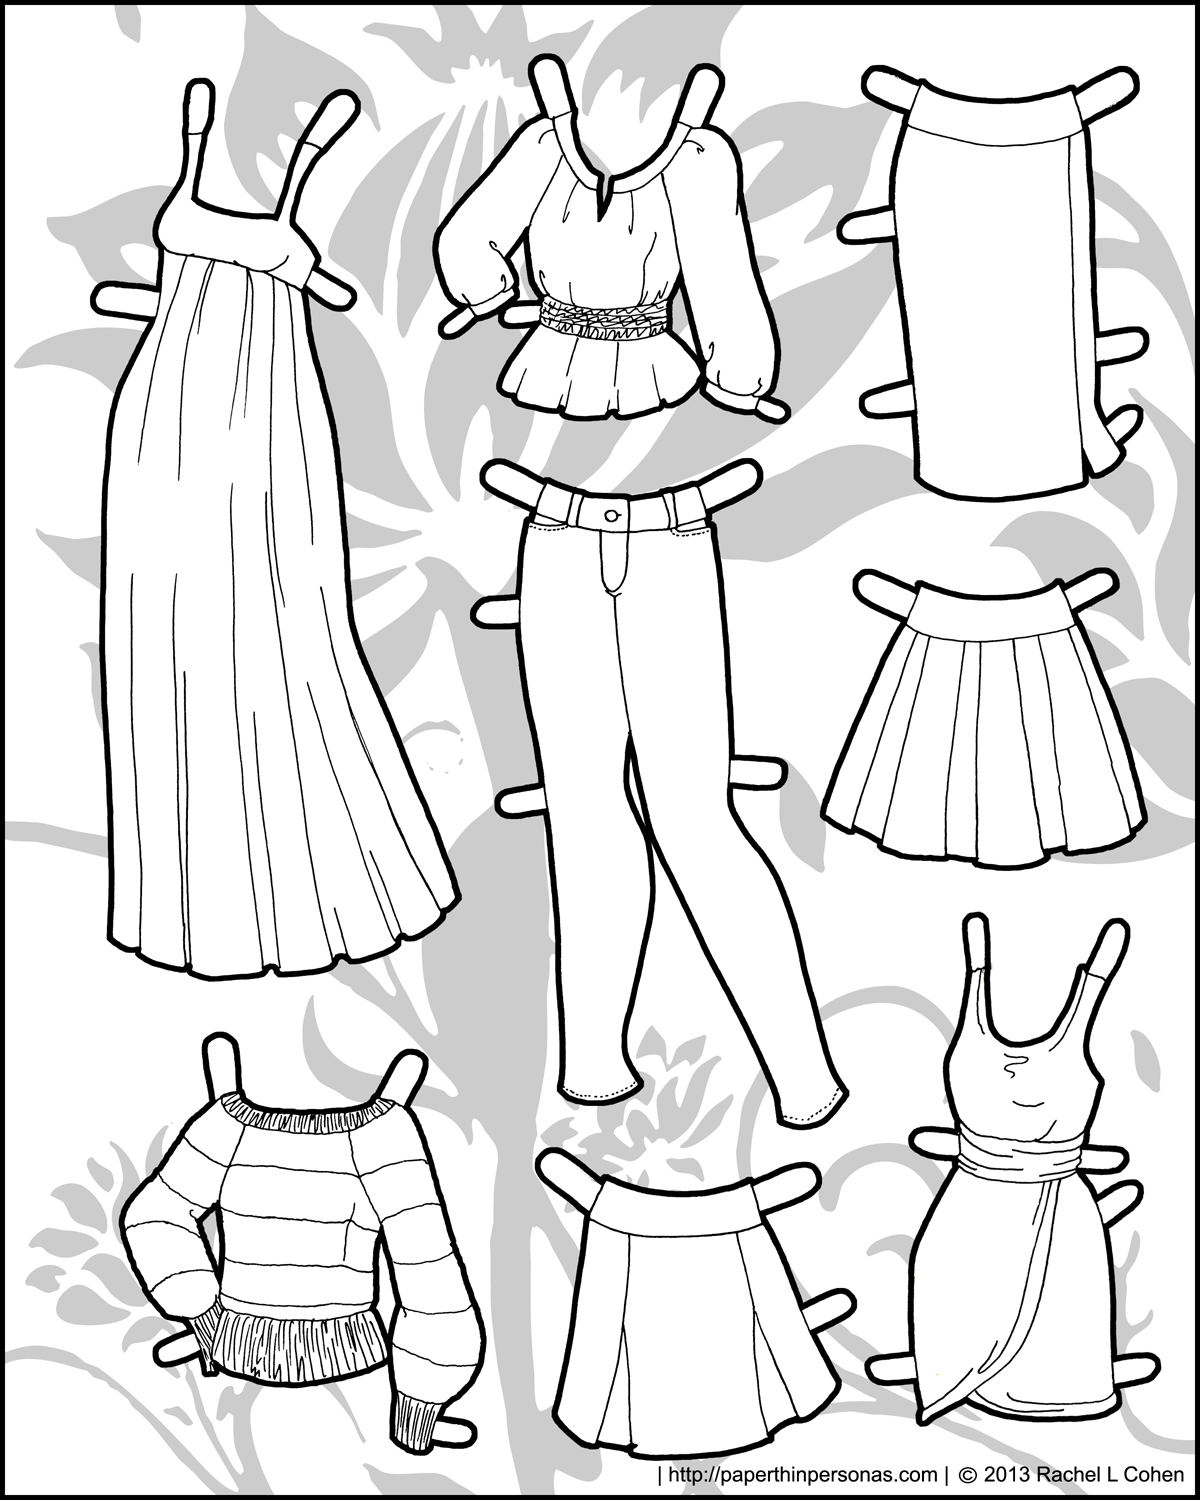 Paper doll clothes skinny jeans and peasant tops for Clothing coloring page